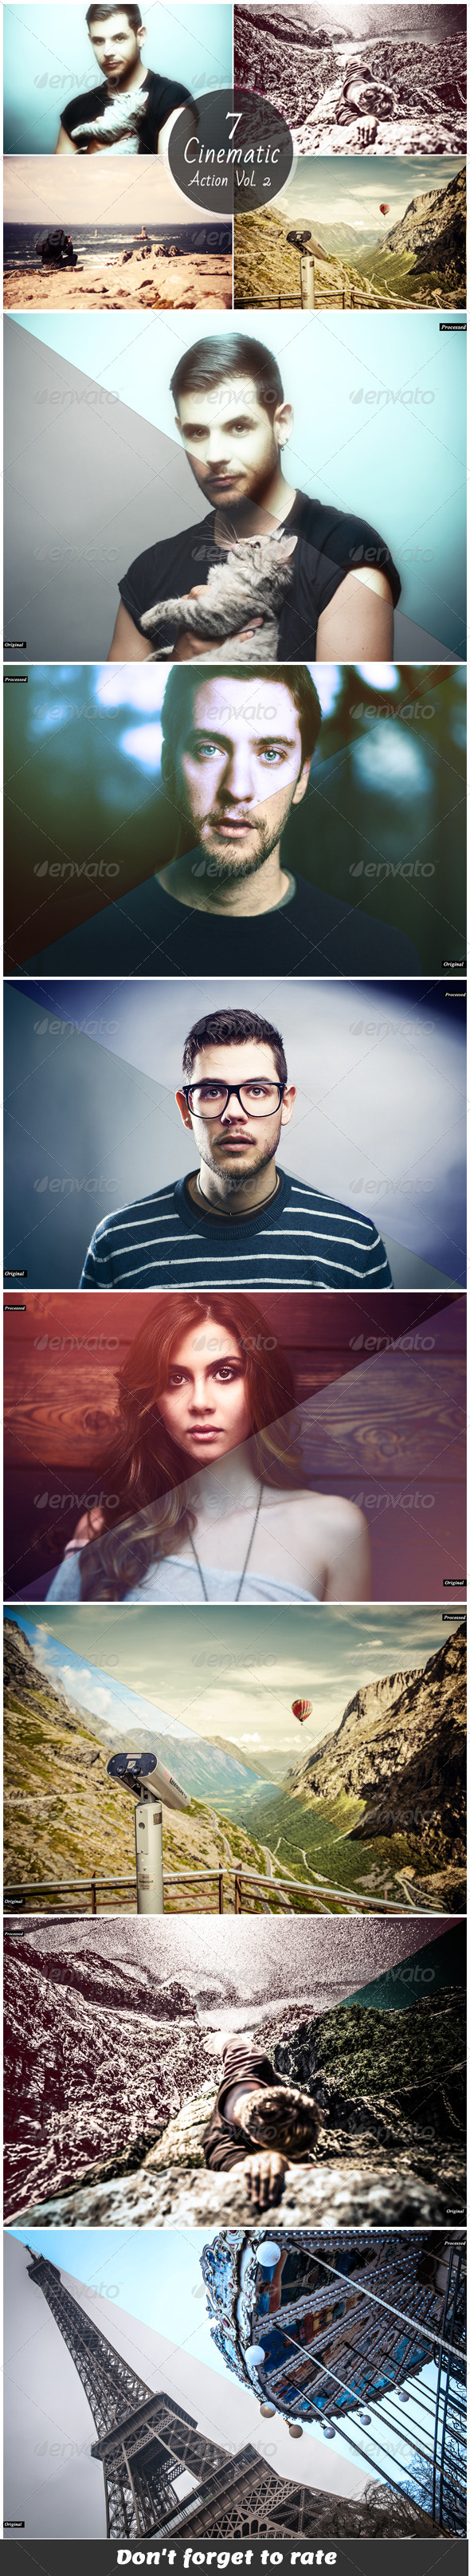 GraphicRiver Cinematic Photoshop Actions V2 6352153